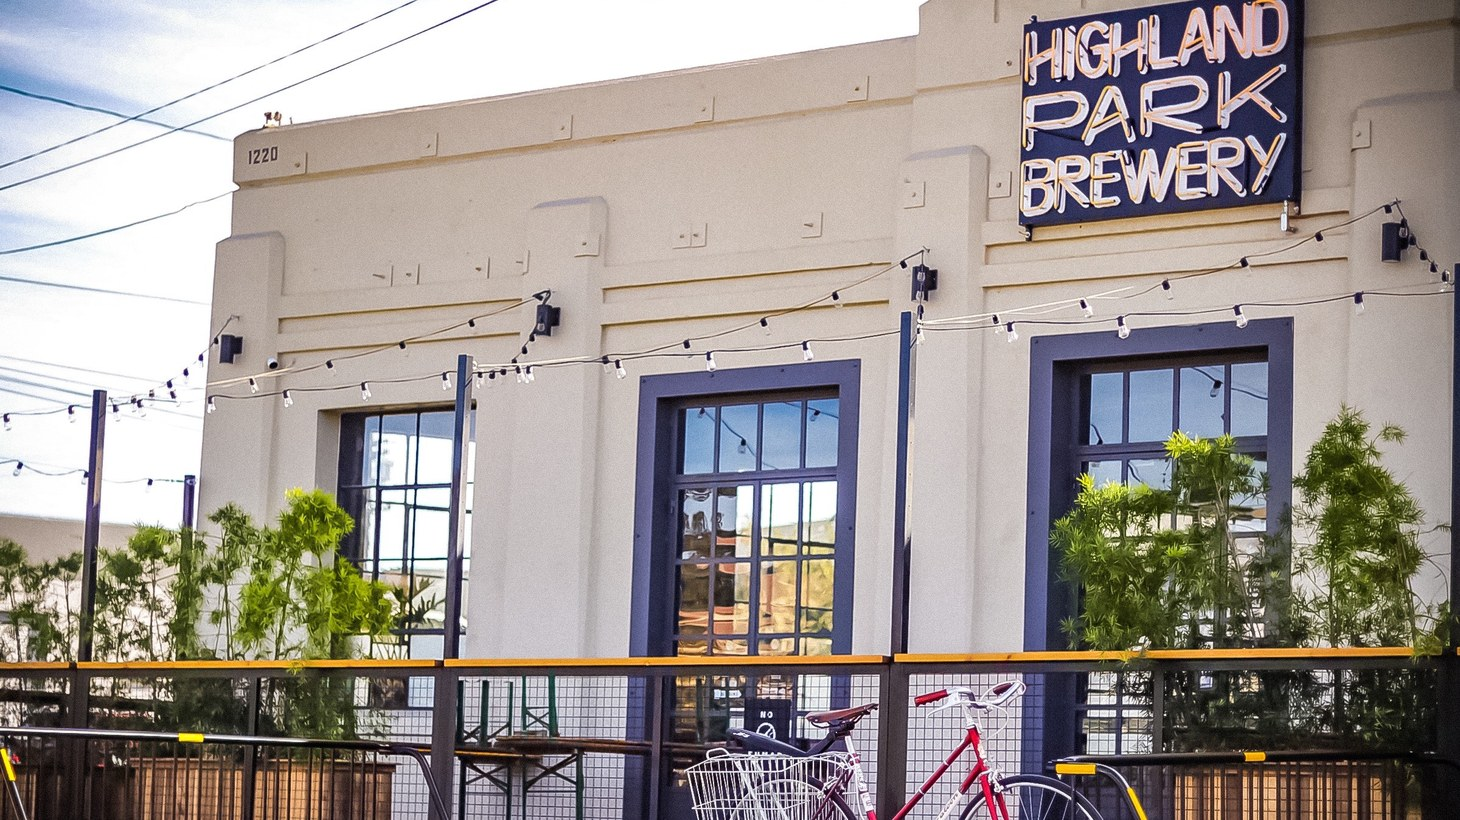 Gov. Newsom recently ordered bars in LA County to close again, and Highland Park Brewery owner Bob Kunz says he expects dine-in restaurants to close again too.